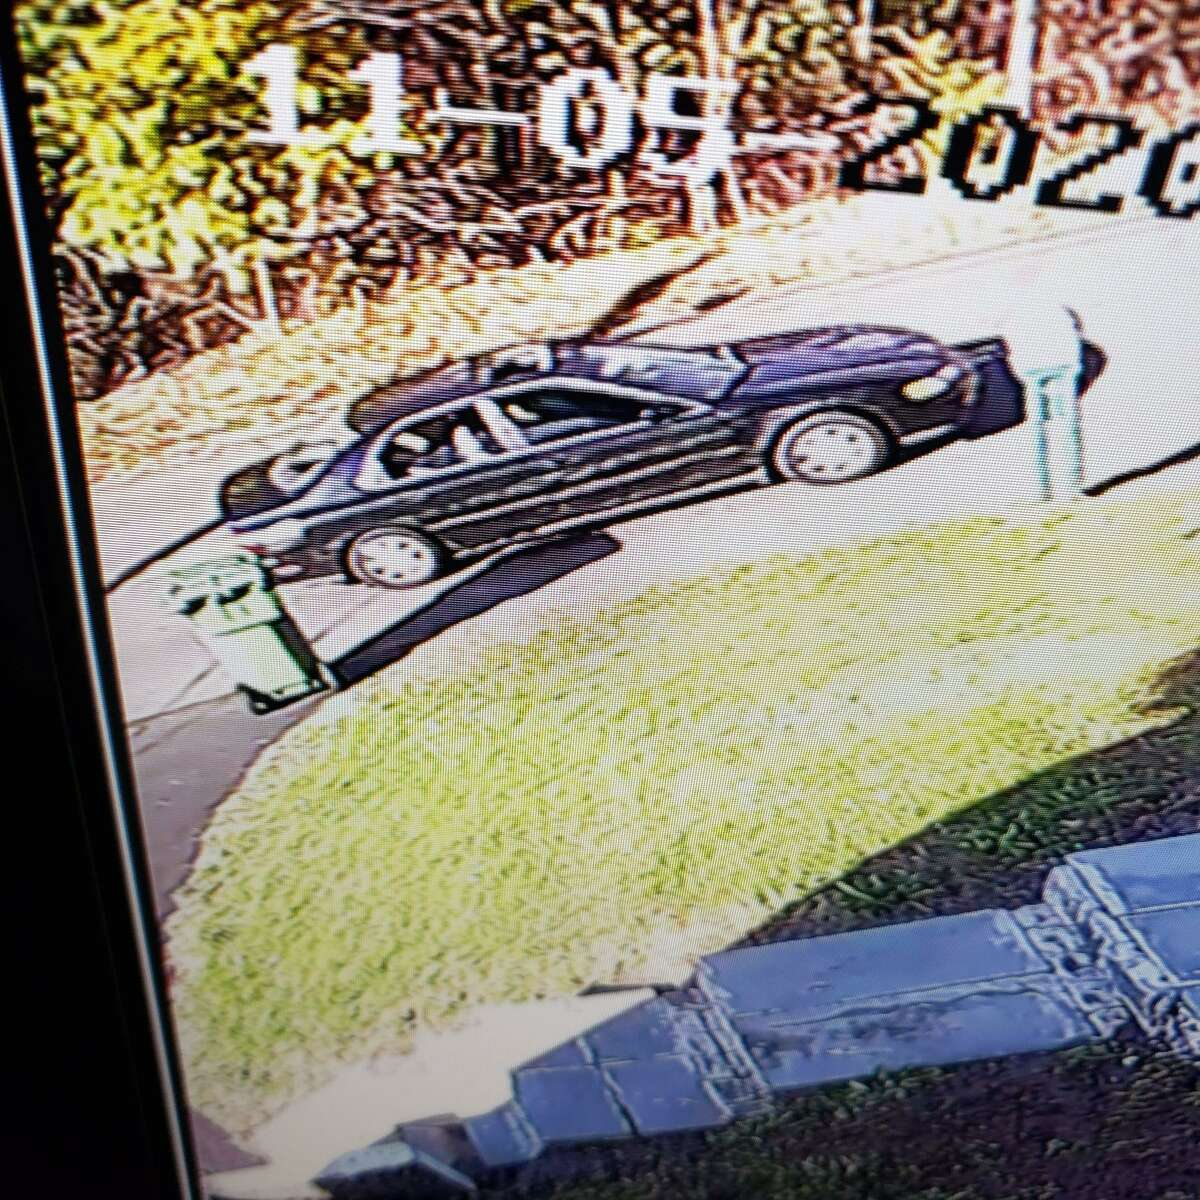 The alleged suspect vehicle tied to a fatal hit-and-run involving a pedestrian in Meriden, Conn., on Thursday, Nov. 5, 2020.